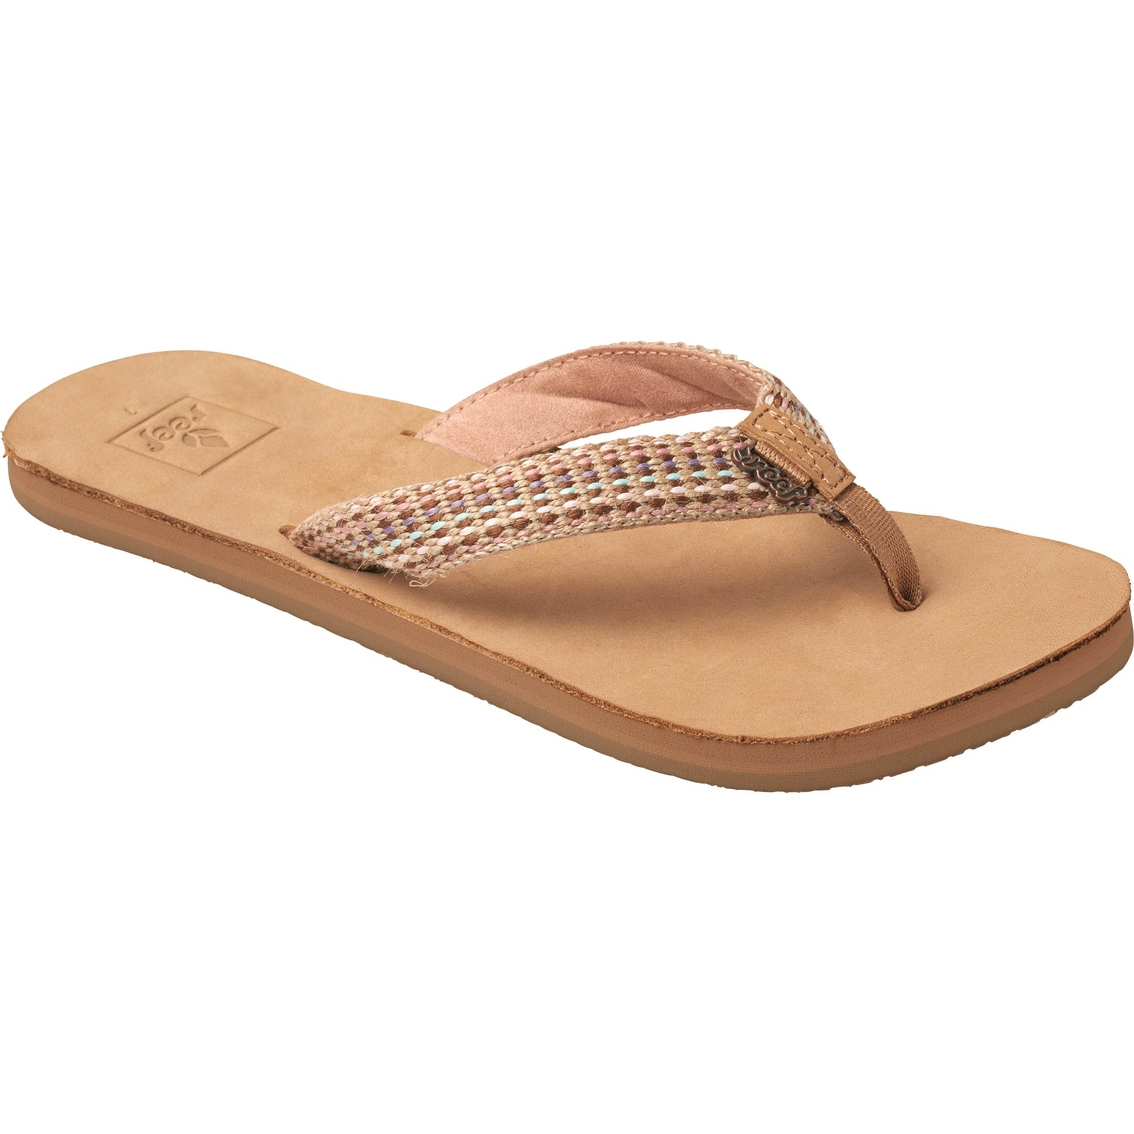 18ee13d67dc8 Reef Gypsylove Lux Sandals